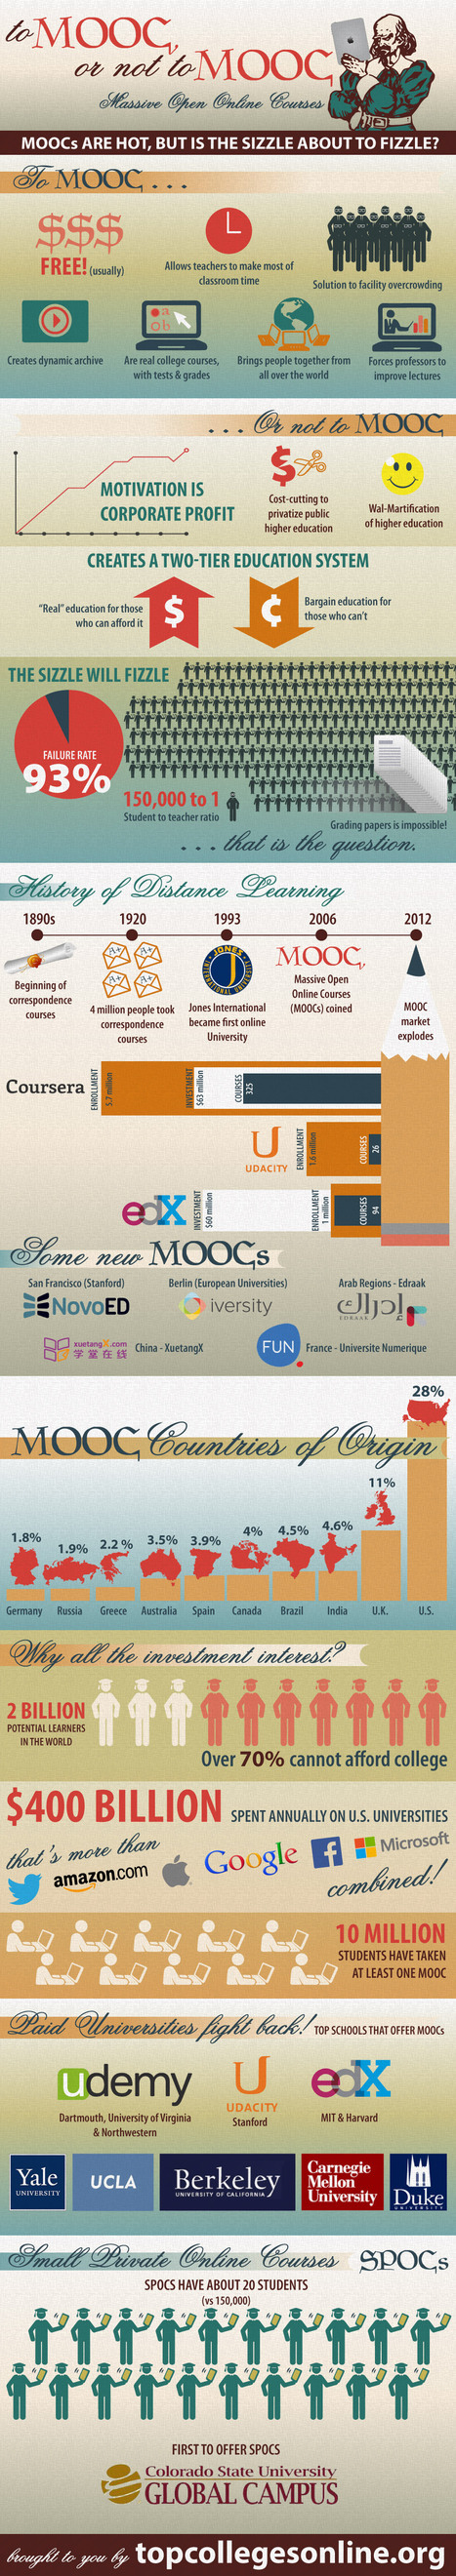 """Infographie : """"To MOOC, or not to MOOC"""" 